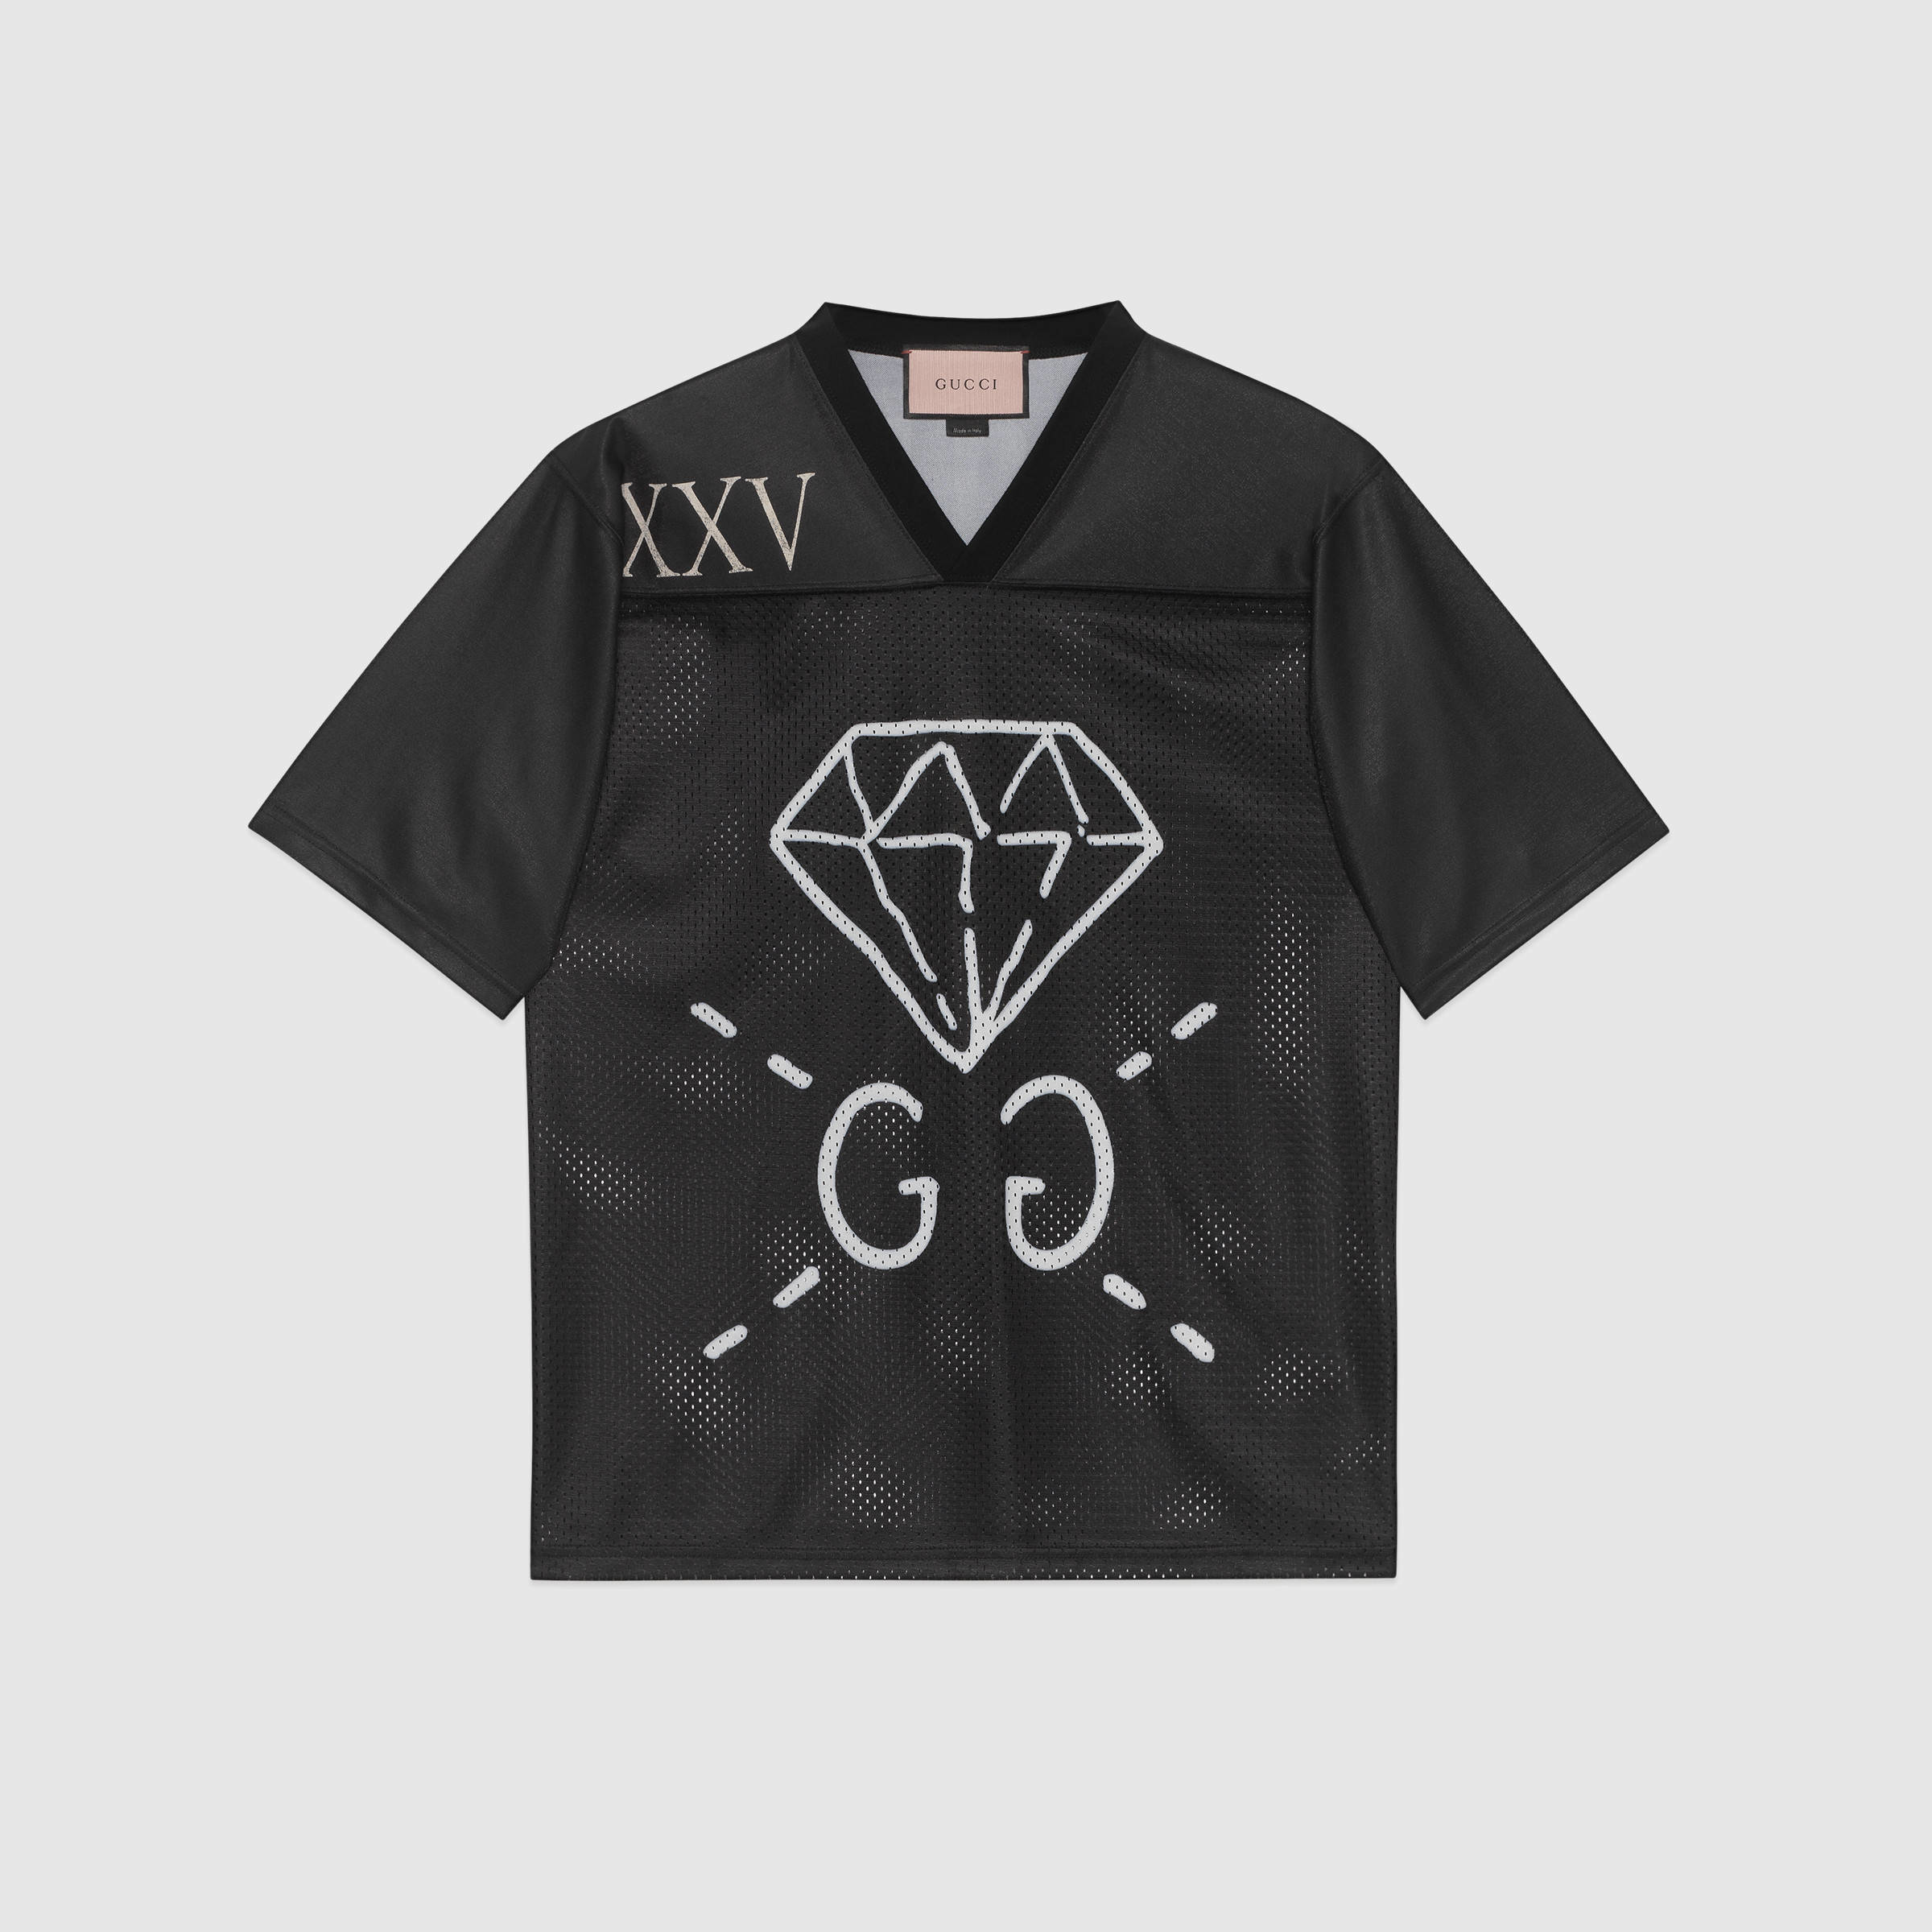 d42753558 Gucci Ghost T-shirt in Black for Men - Lyst